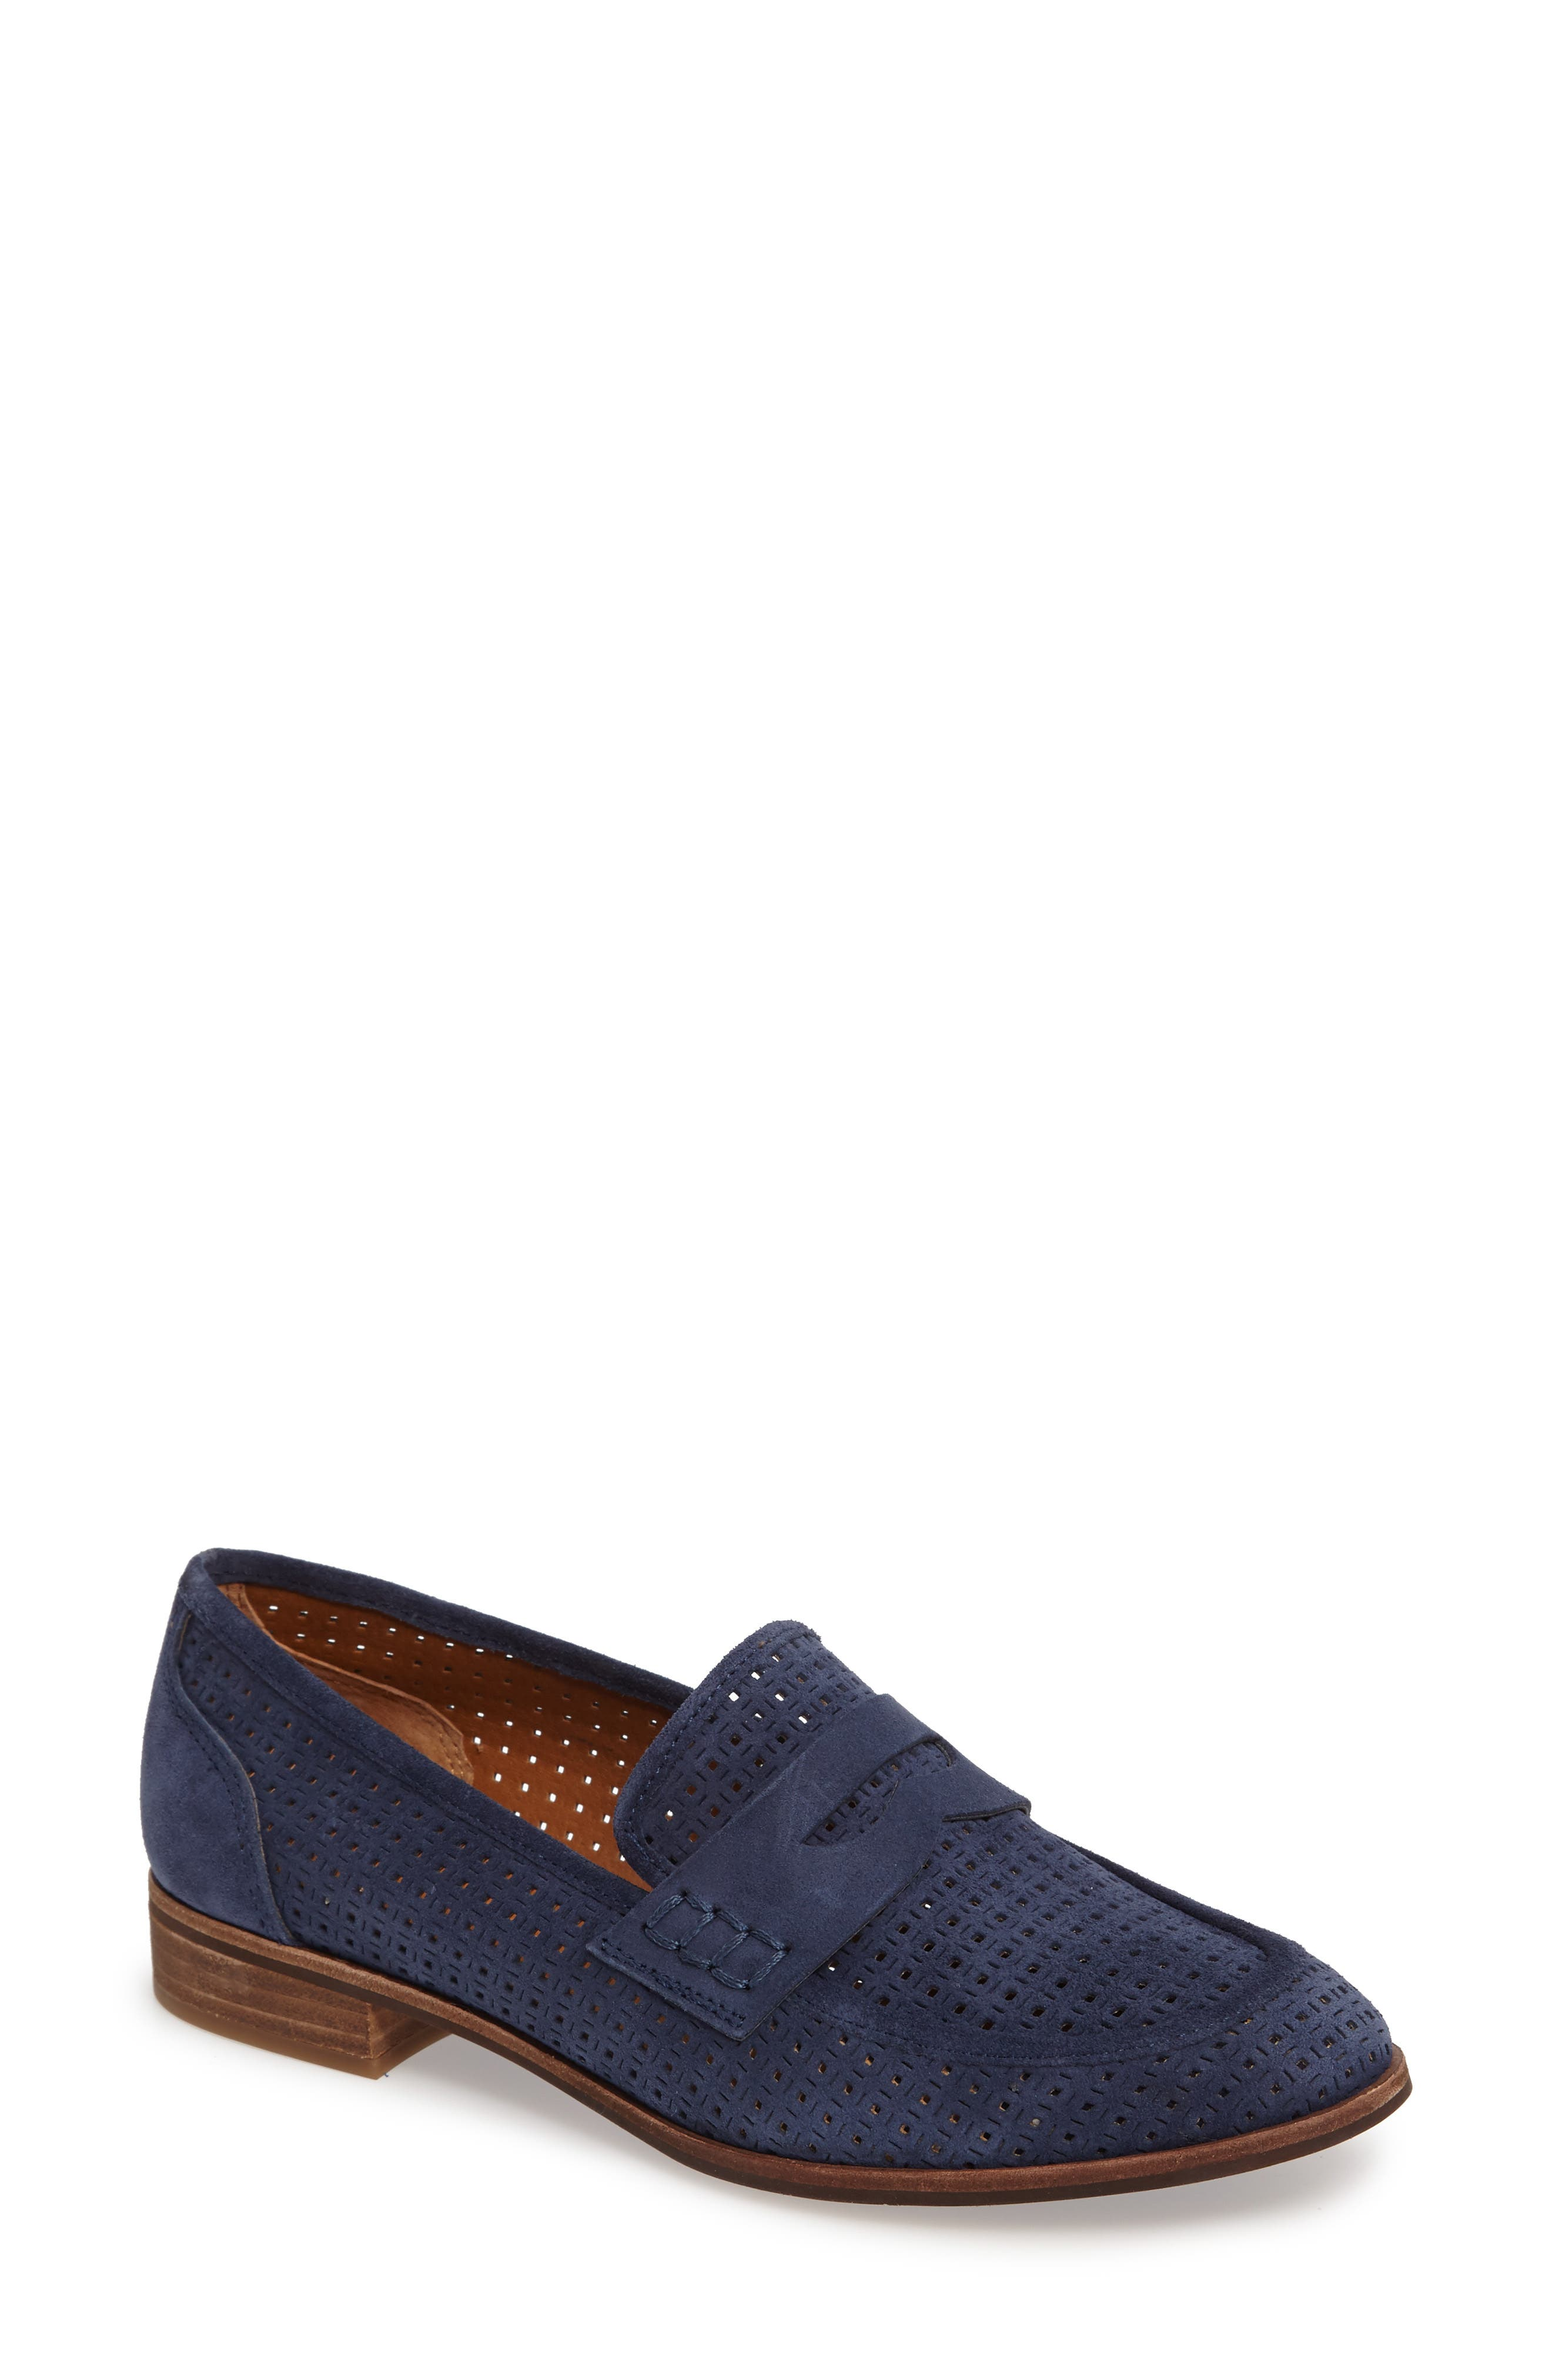 'Jolette' Penny Loafer,                             Main thumbnail 19, color,